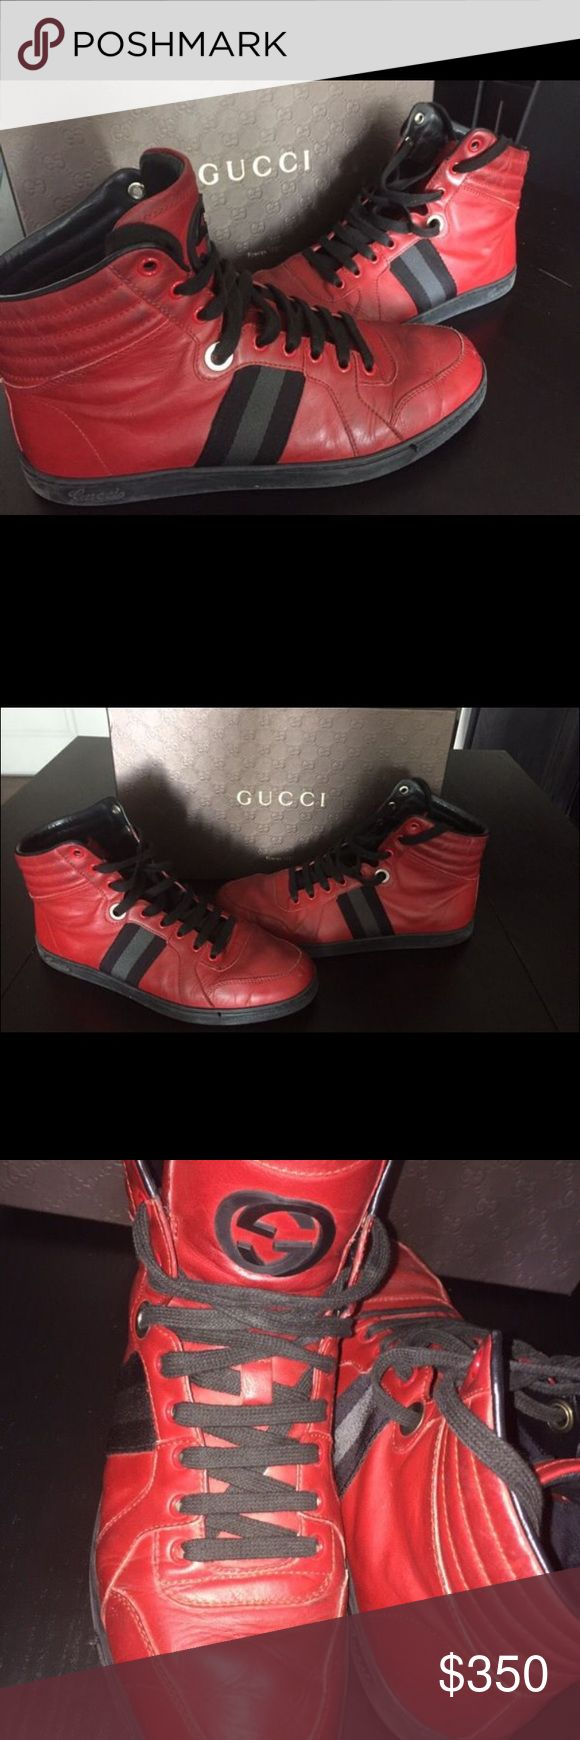 Authentic Gucci High-top Sneaker Authentic Red and Black Gucci Leather High-top Sneaker (Size 7Gucci) Gucci Shoes Sneakers